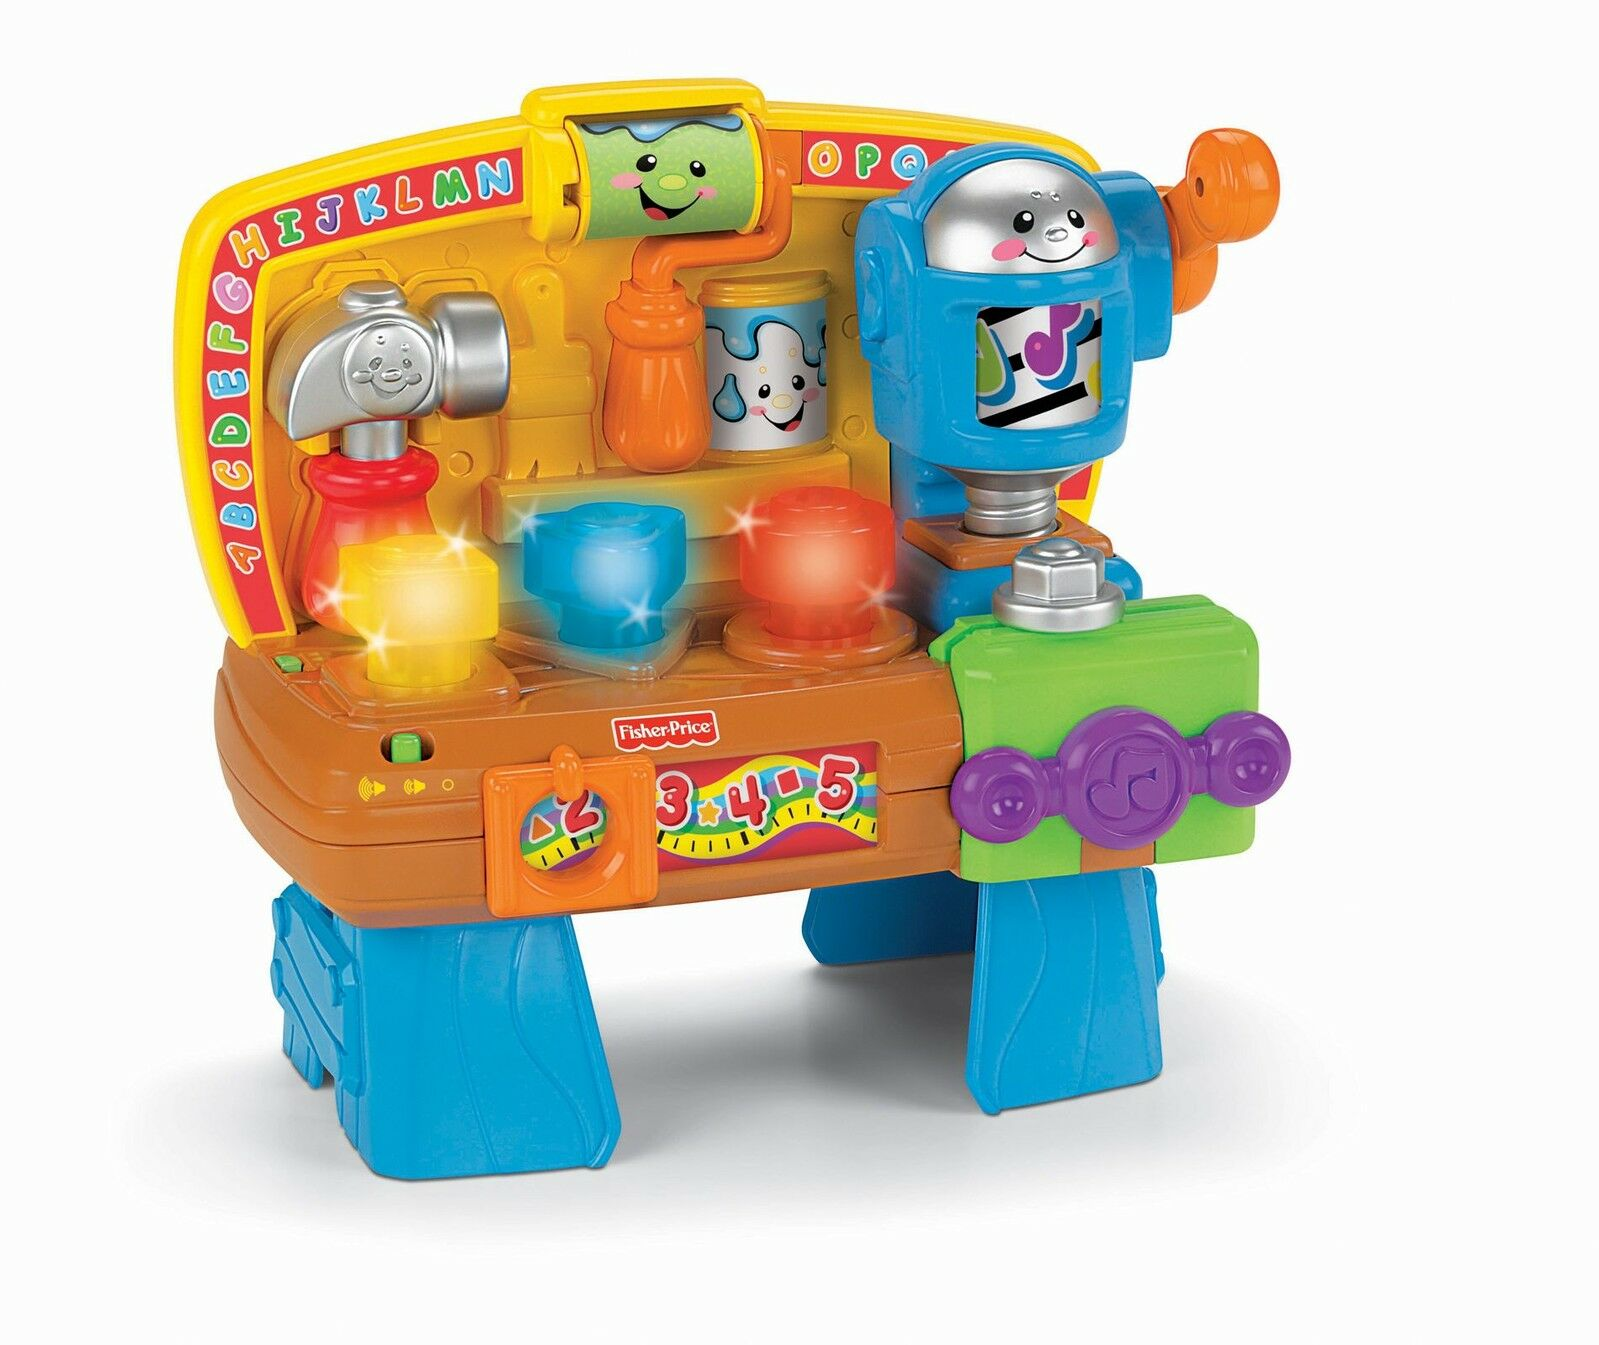 plete Guide to Buying Learning Toys for Your Kids